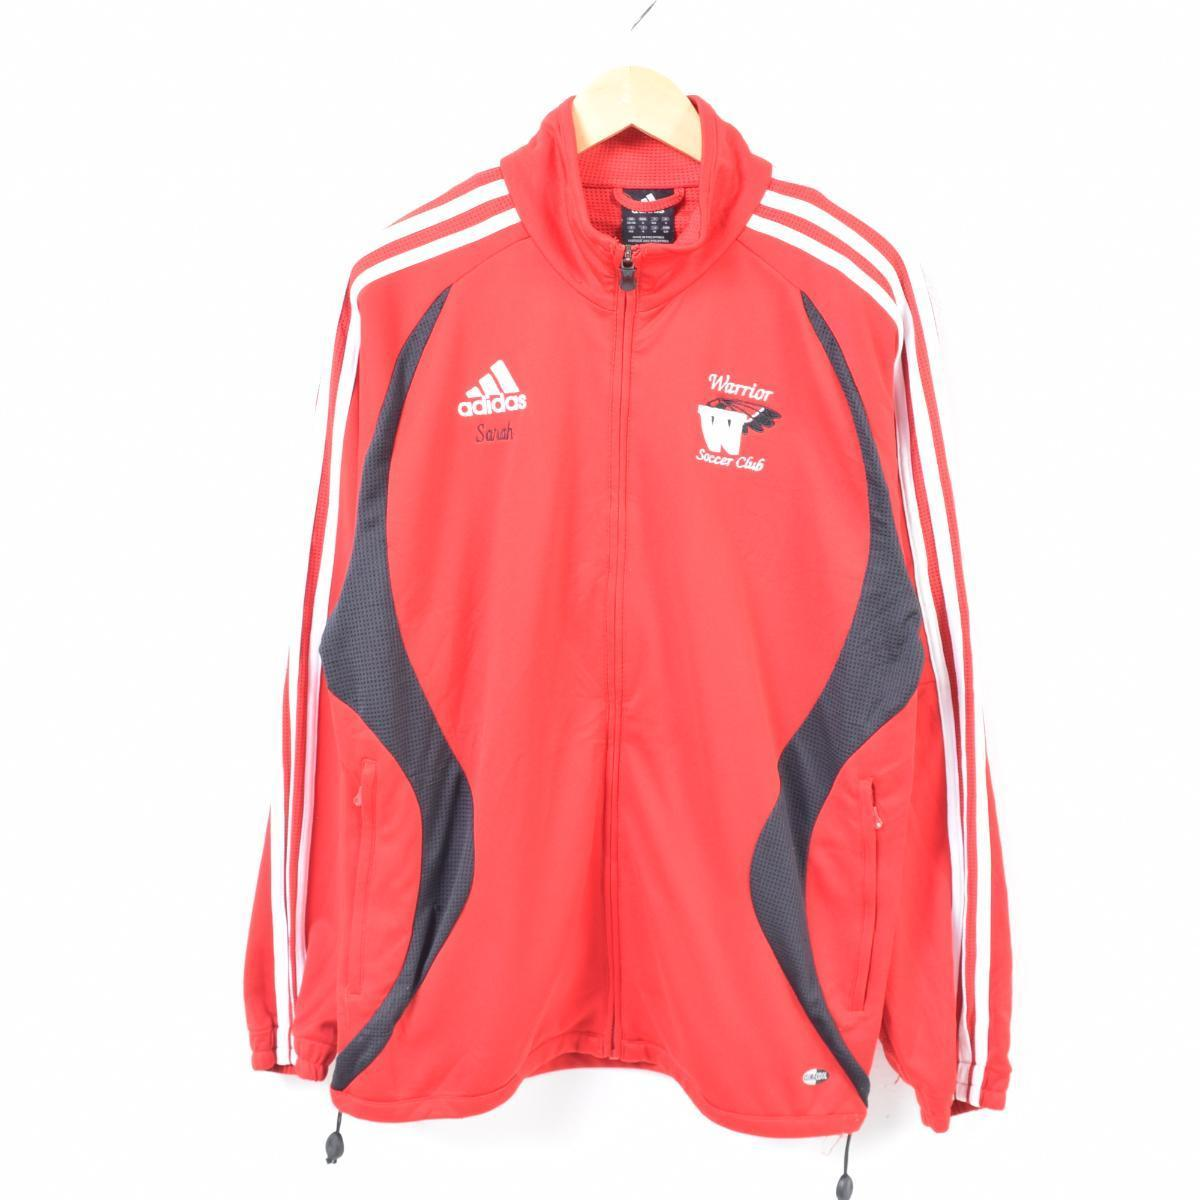 the latest d940a 81a0c Adidas adidas CLIMA COOL jersey truck jacket men M /wao7703